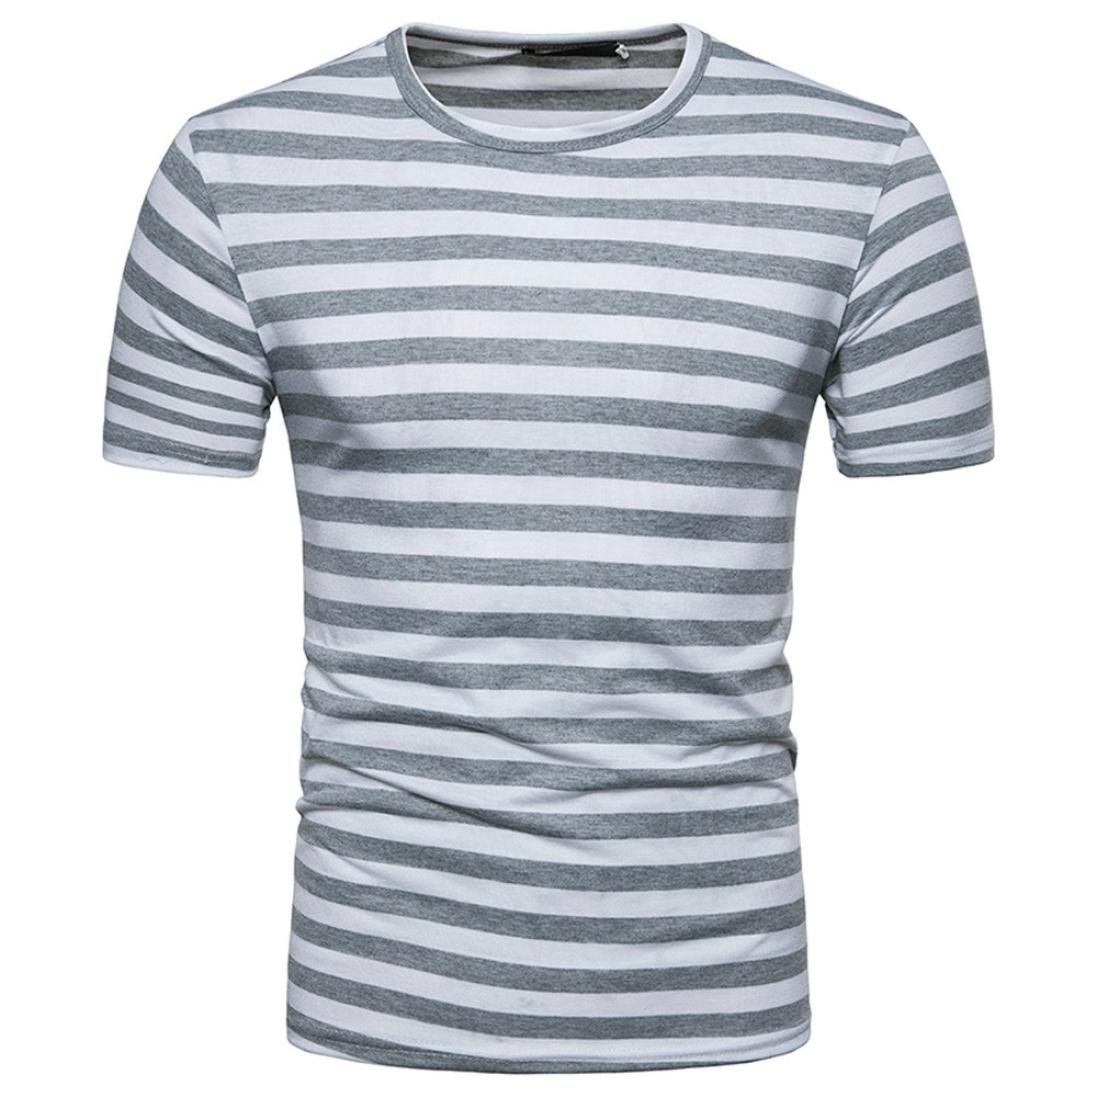 Qisc Mens Tops Men's Youth Short Sleeve Crew Neck Striped Color Block T Shirt Tee Outfits Tops (XXL, Gray)